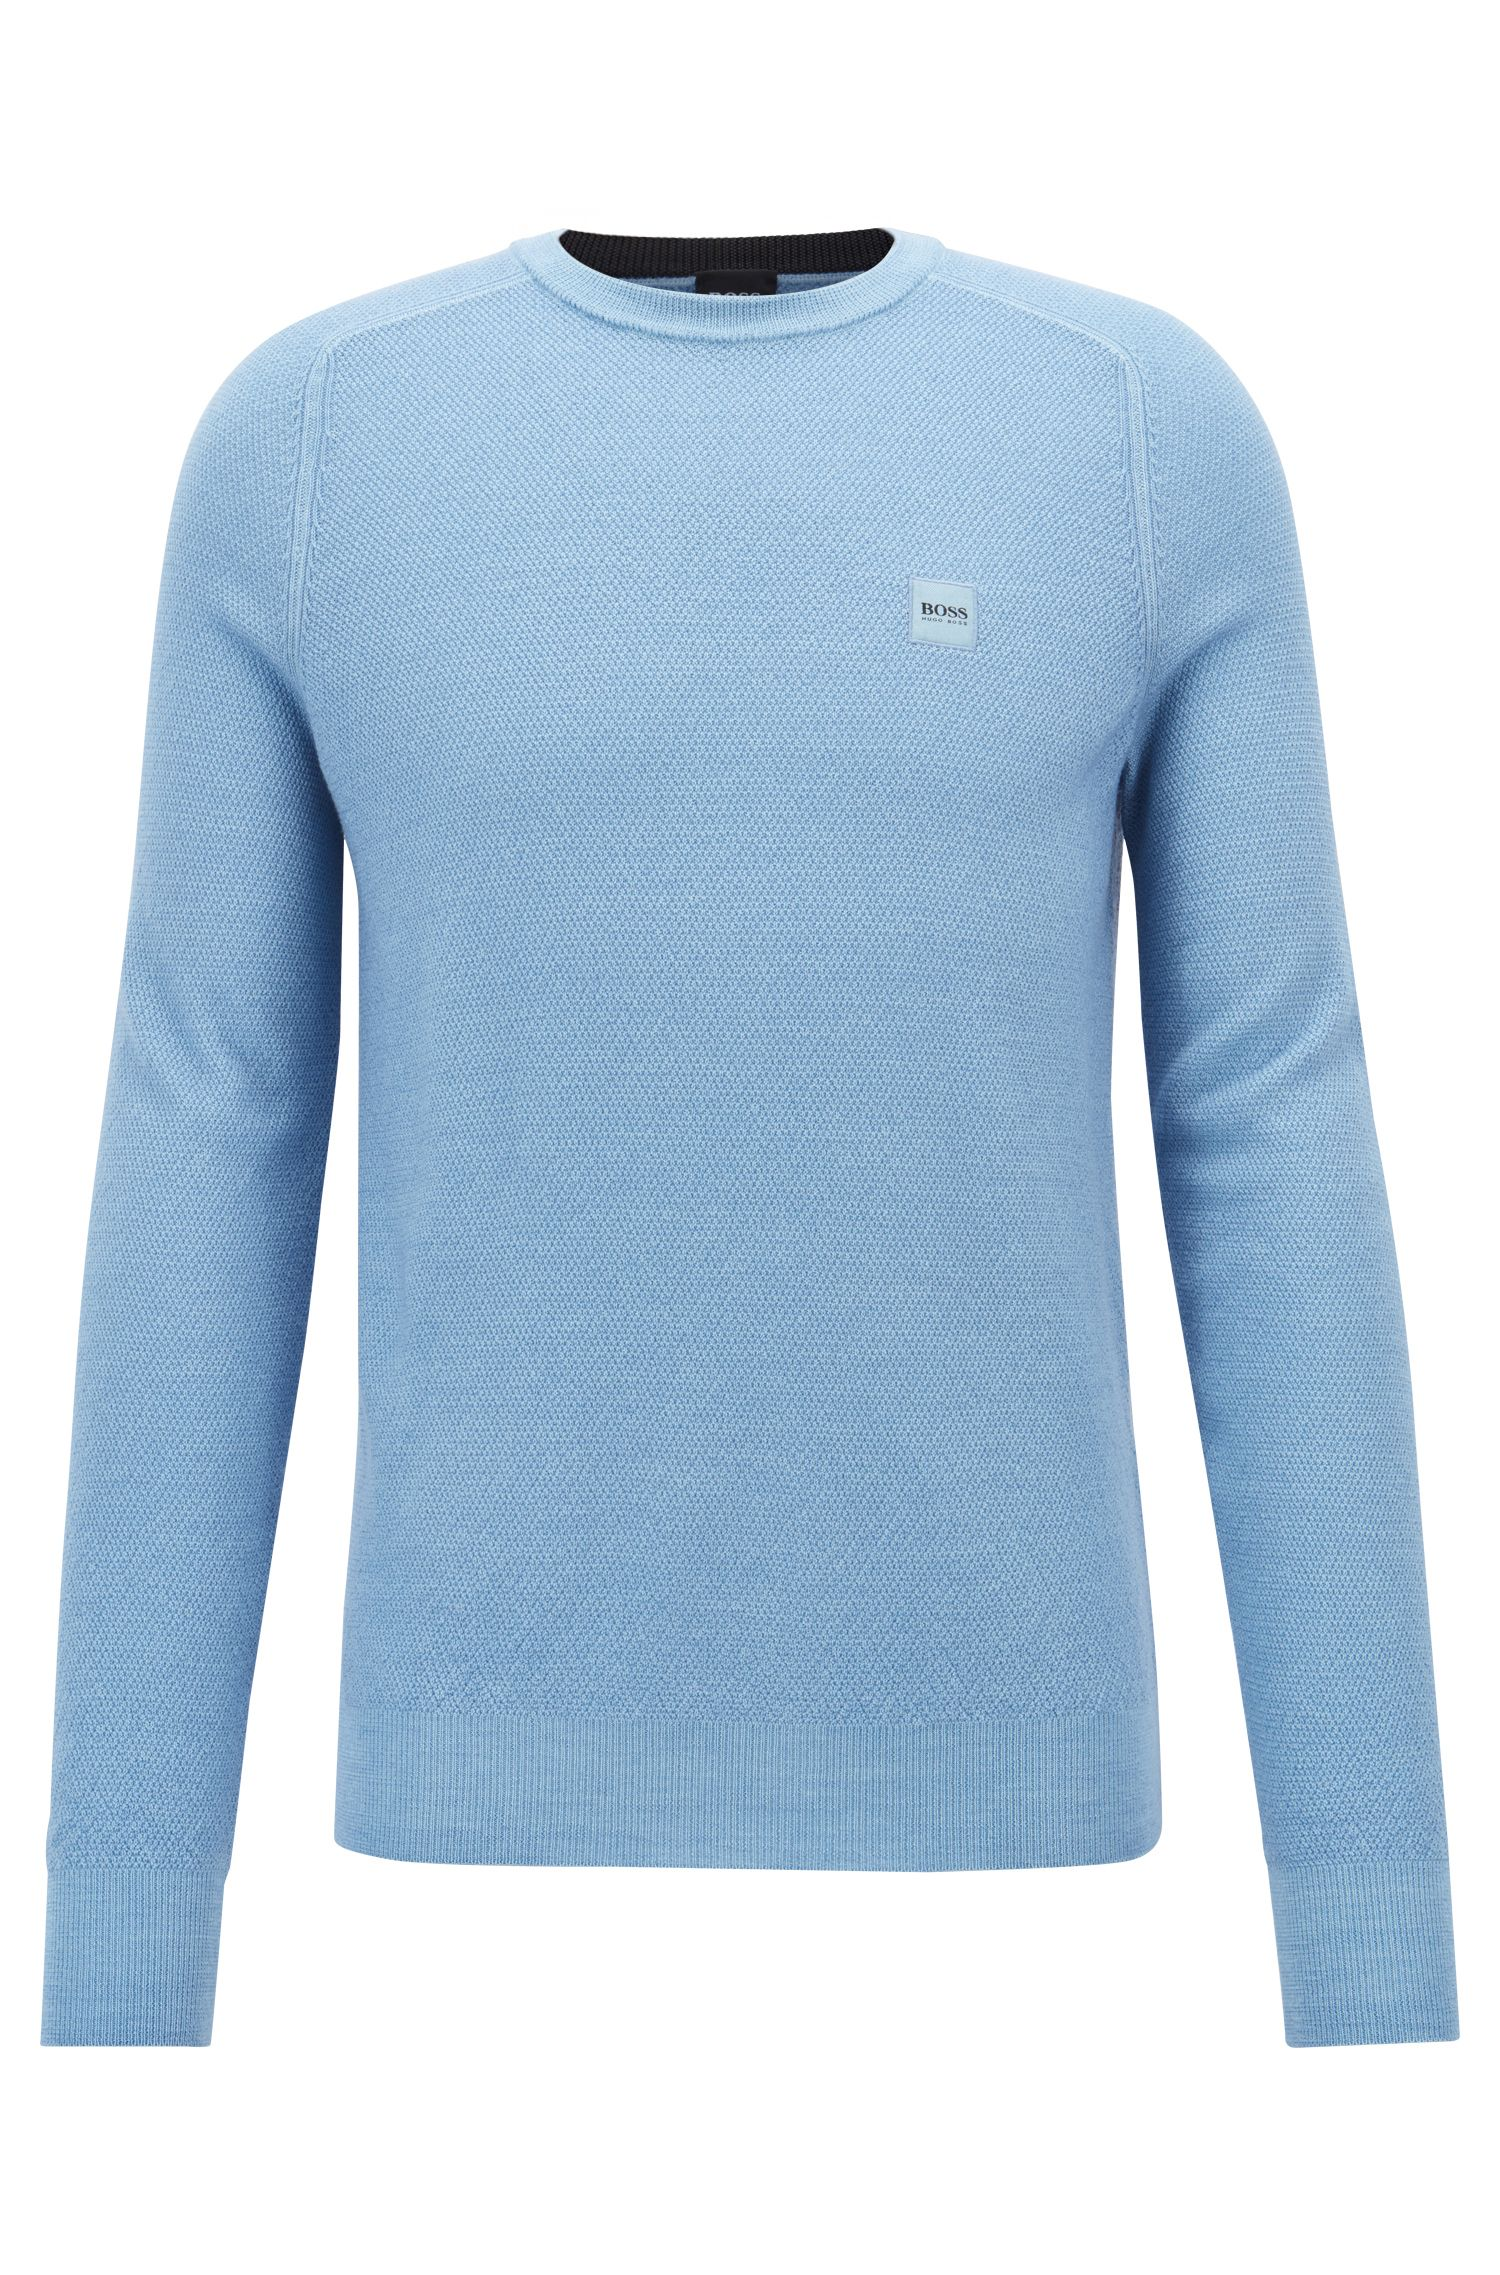 Crew-neck knitted sweater in garment-dyed merino wool, Light Blue